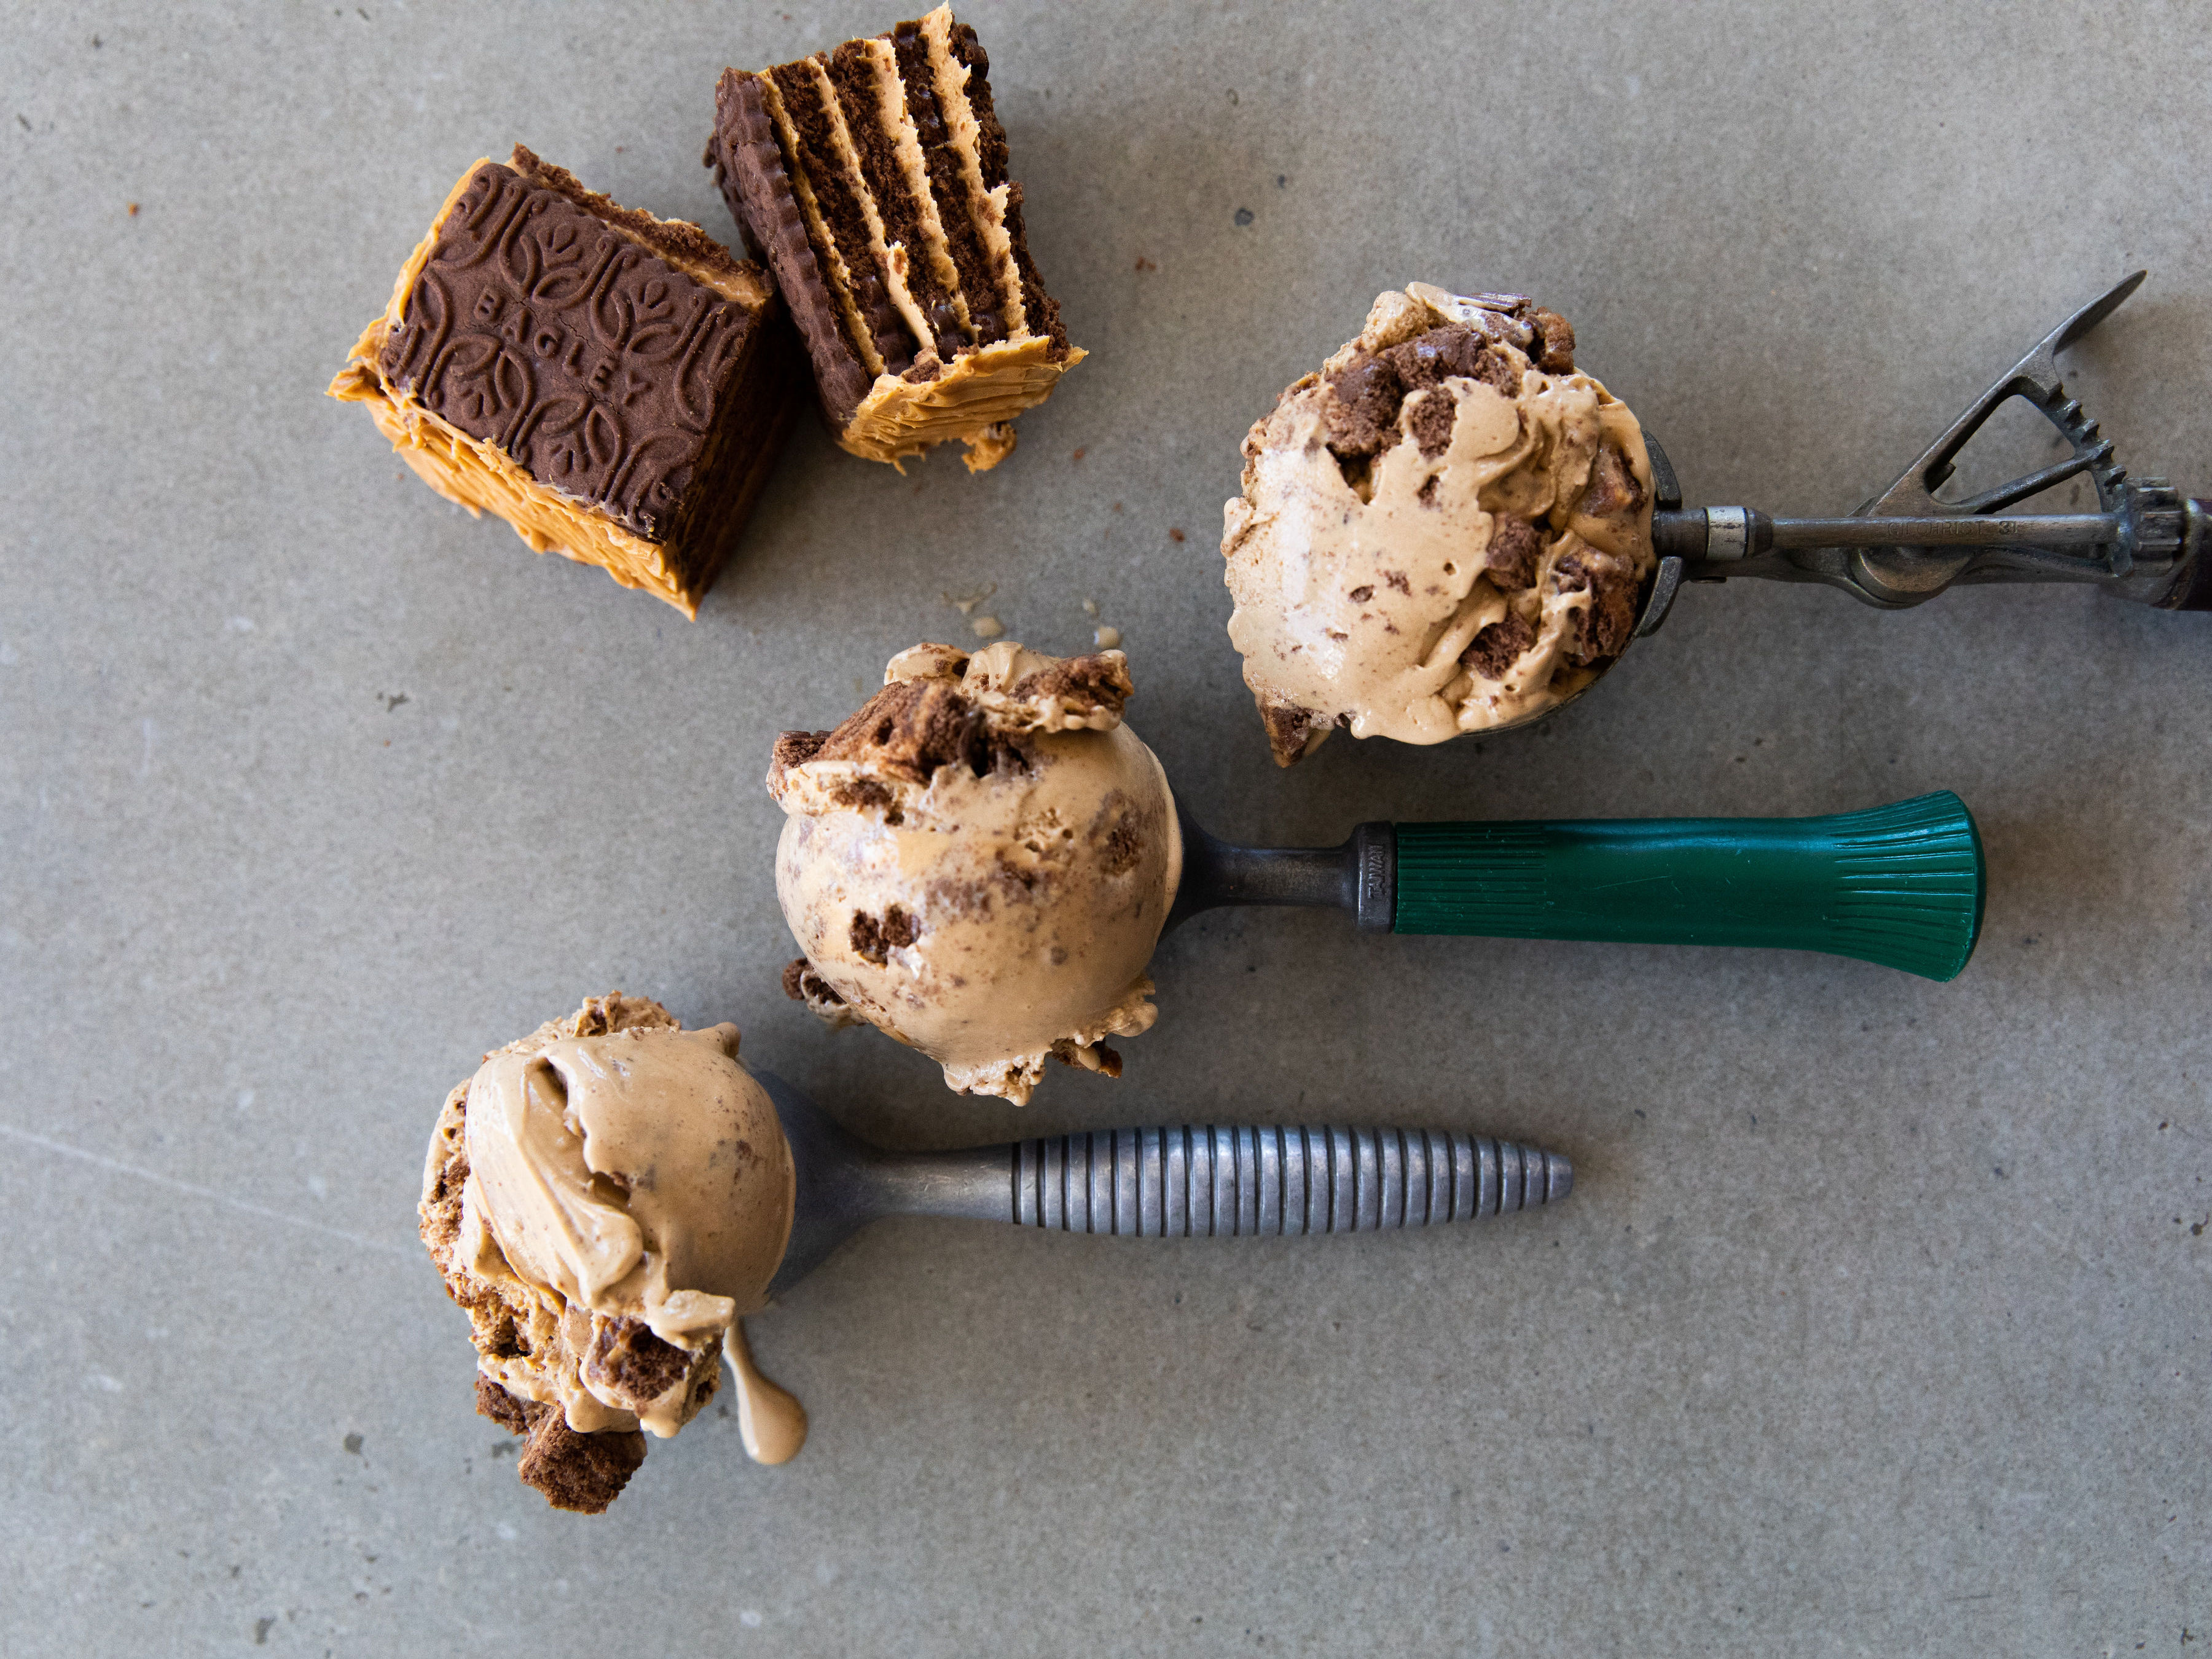 Dolcezza is giving away free chocotorta gelato Friday, March 19, to celebrate a year of persistence